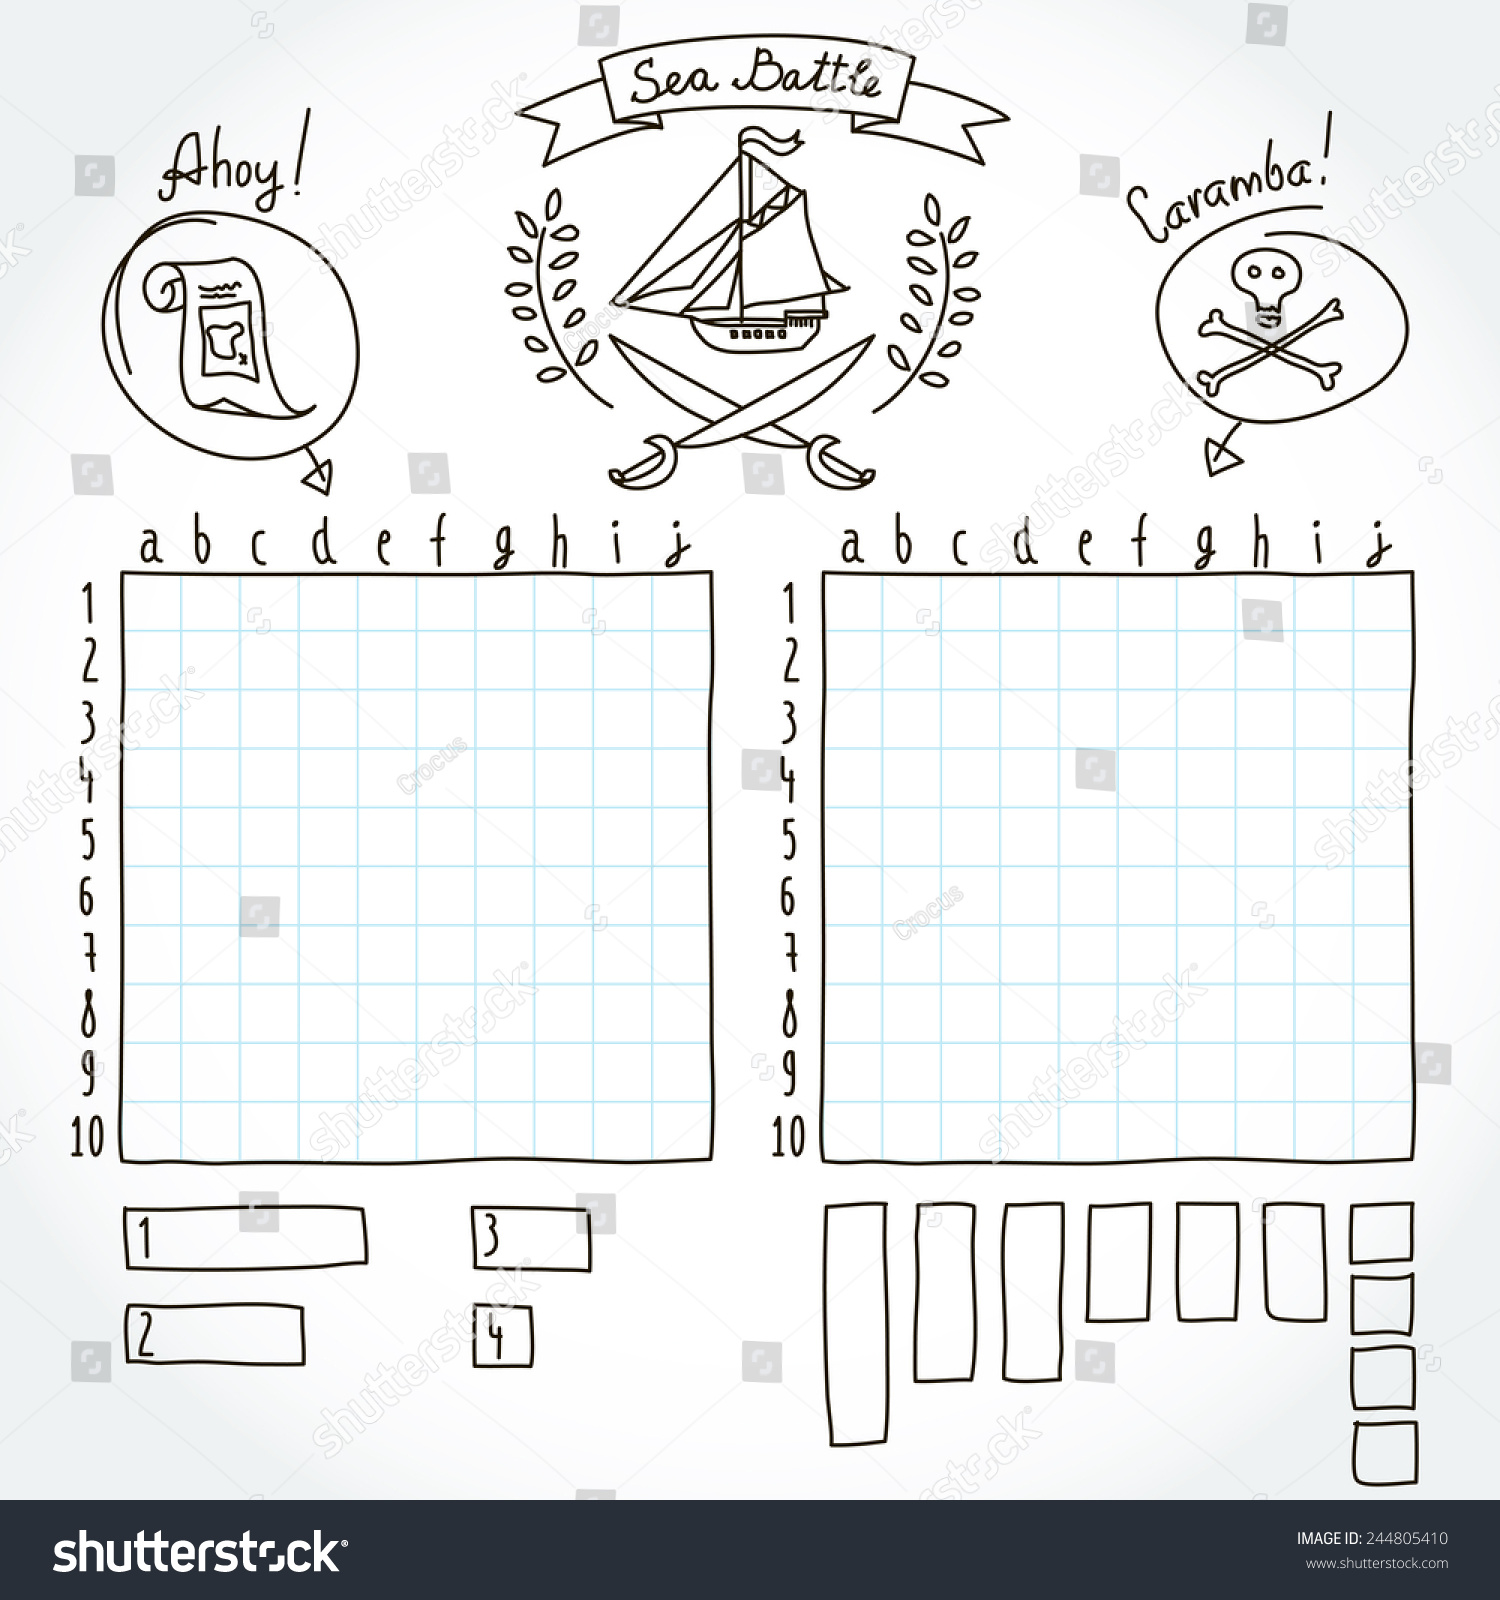 how to play sea battle board game